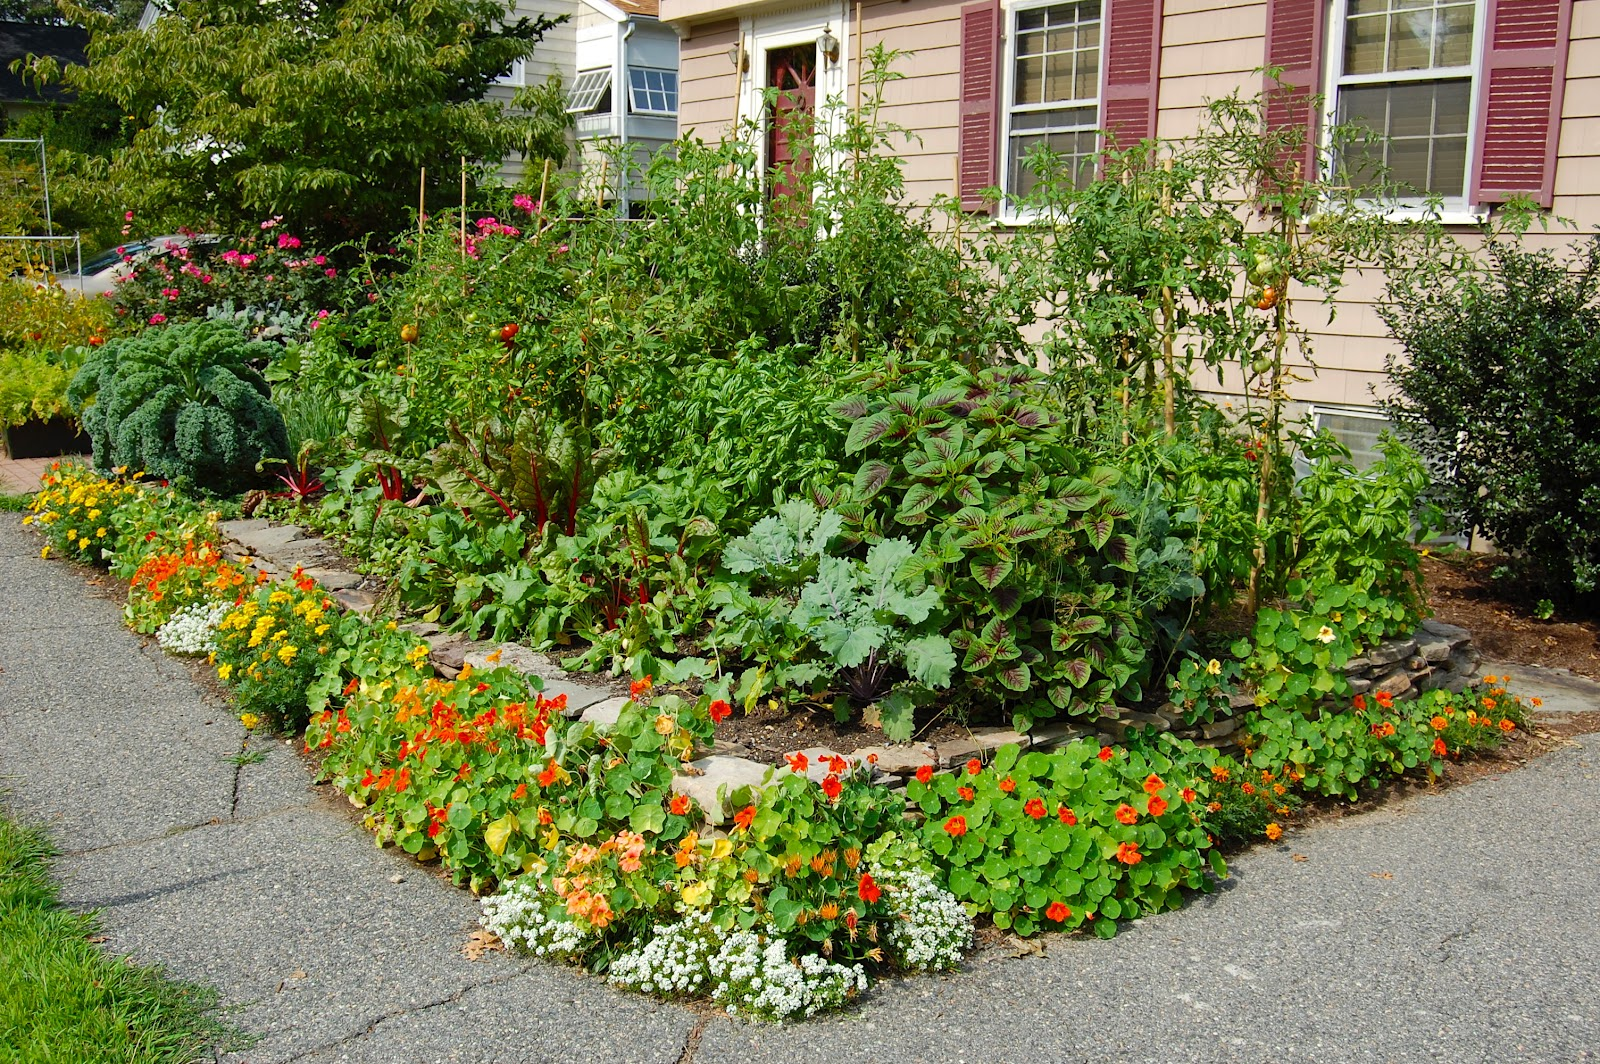 Landscaping landscaping ideas for front yard edible gardens for Garden designs for front yards